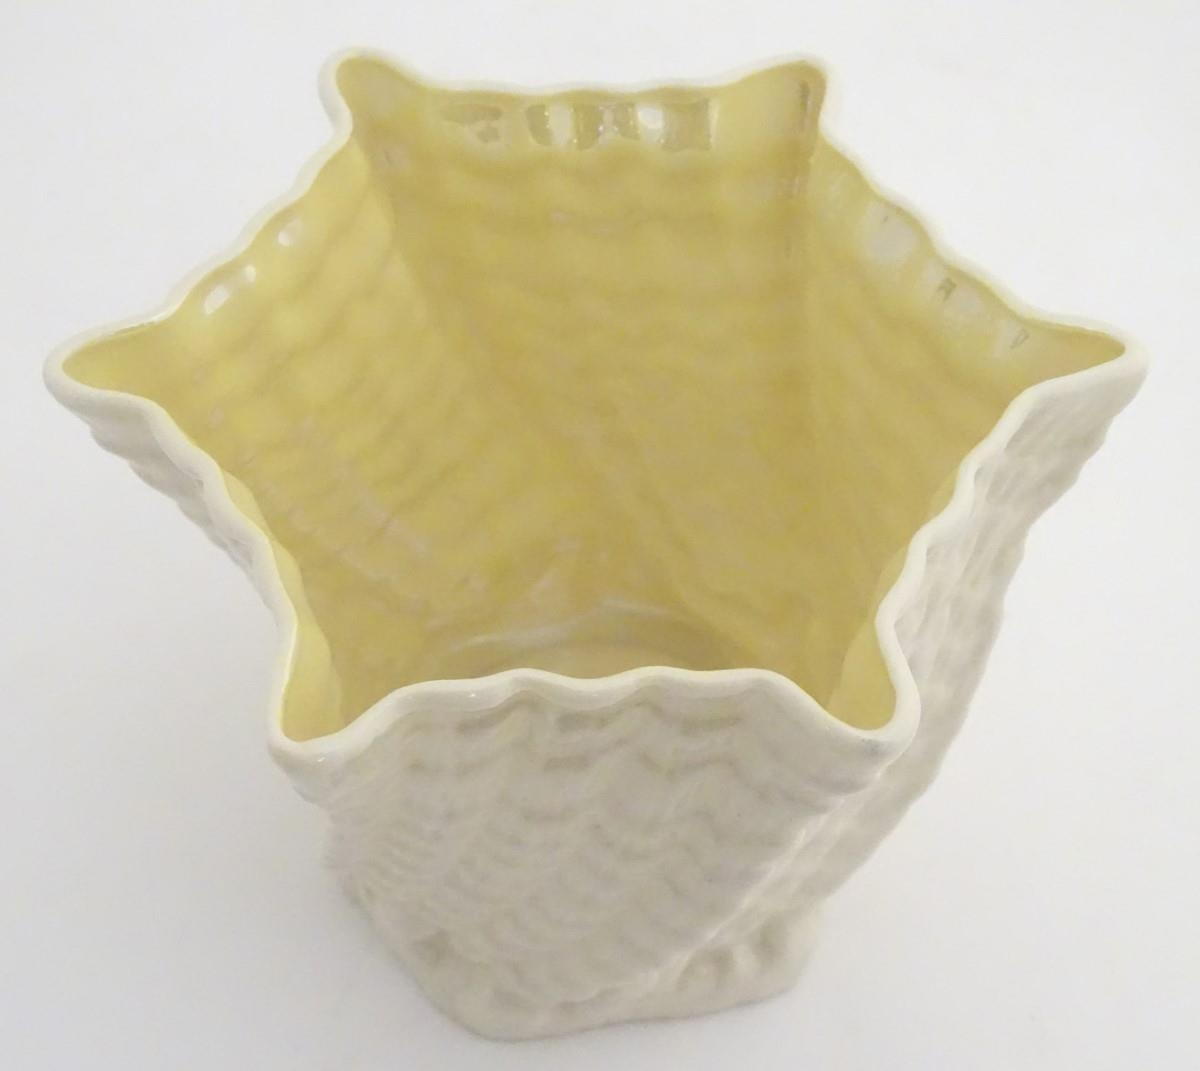 Two Belleek Ireland pottery wares, comprising a twisted lustre shell vase / flower pot with a - Image 7 of 9